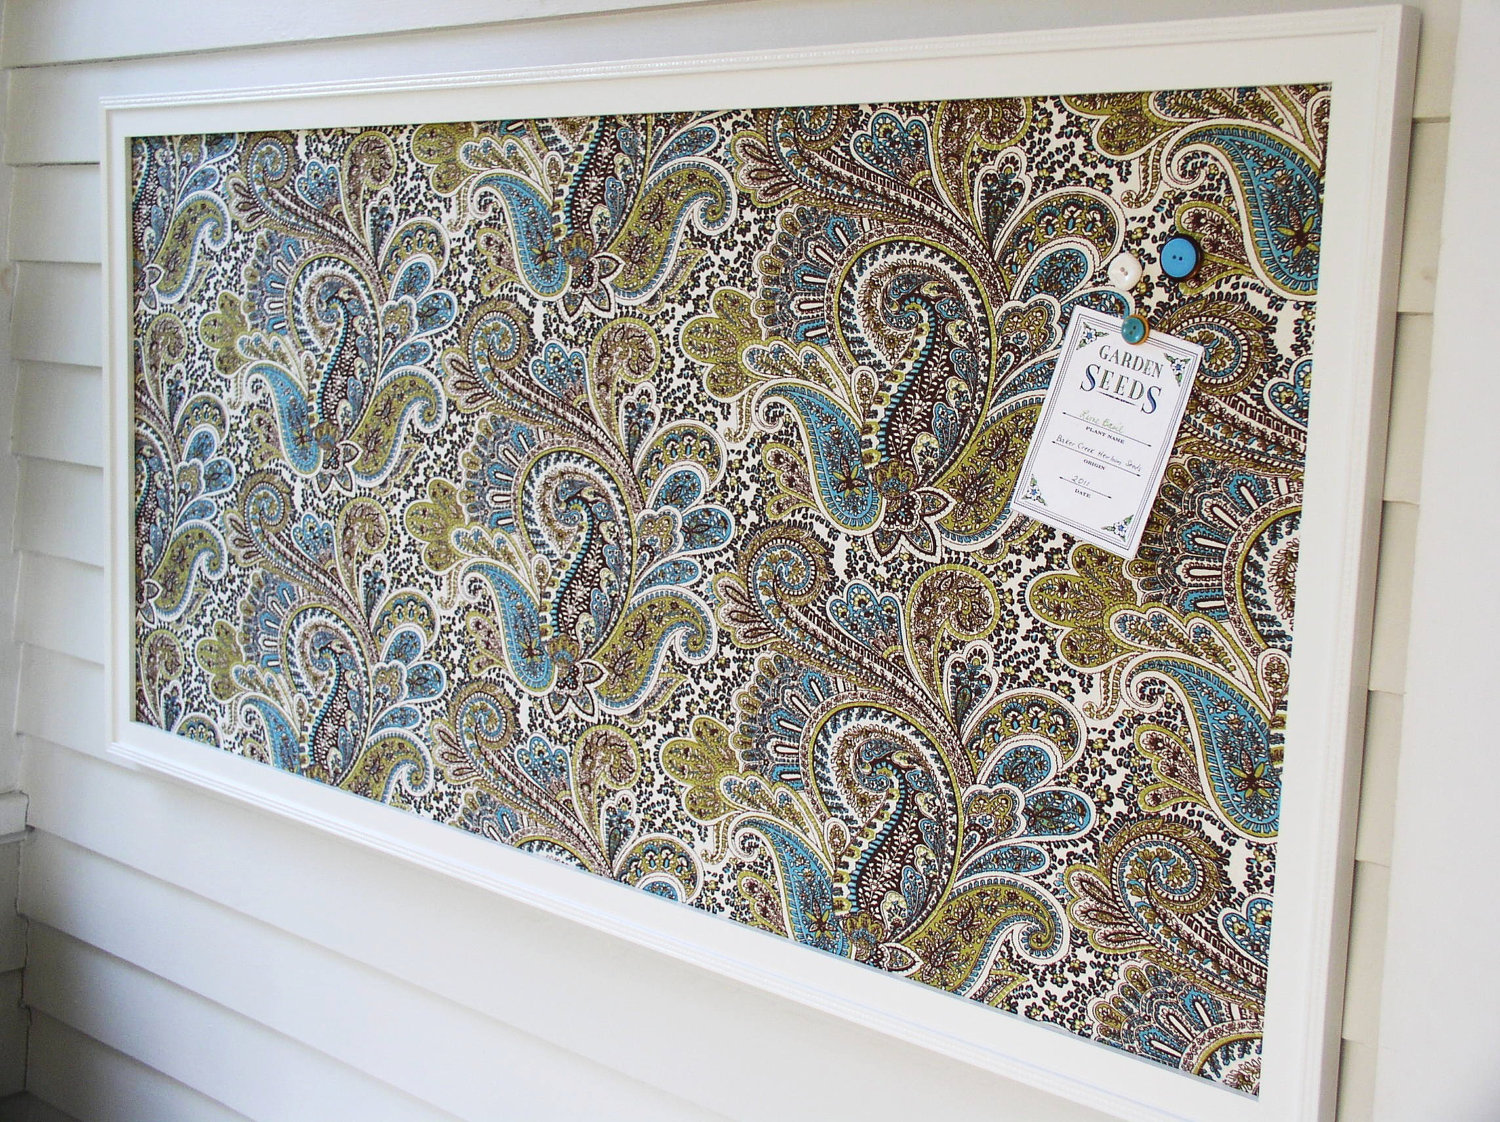 Ealing Handmade Decorative Magnetic Board With Stunning Patterned Fabric Plus Wooden Framed Mounted On The Wall